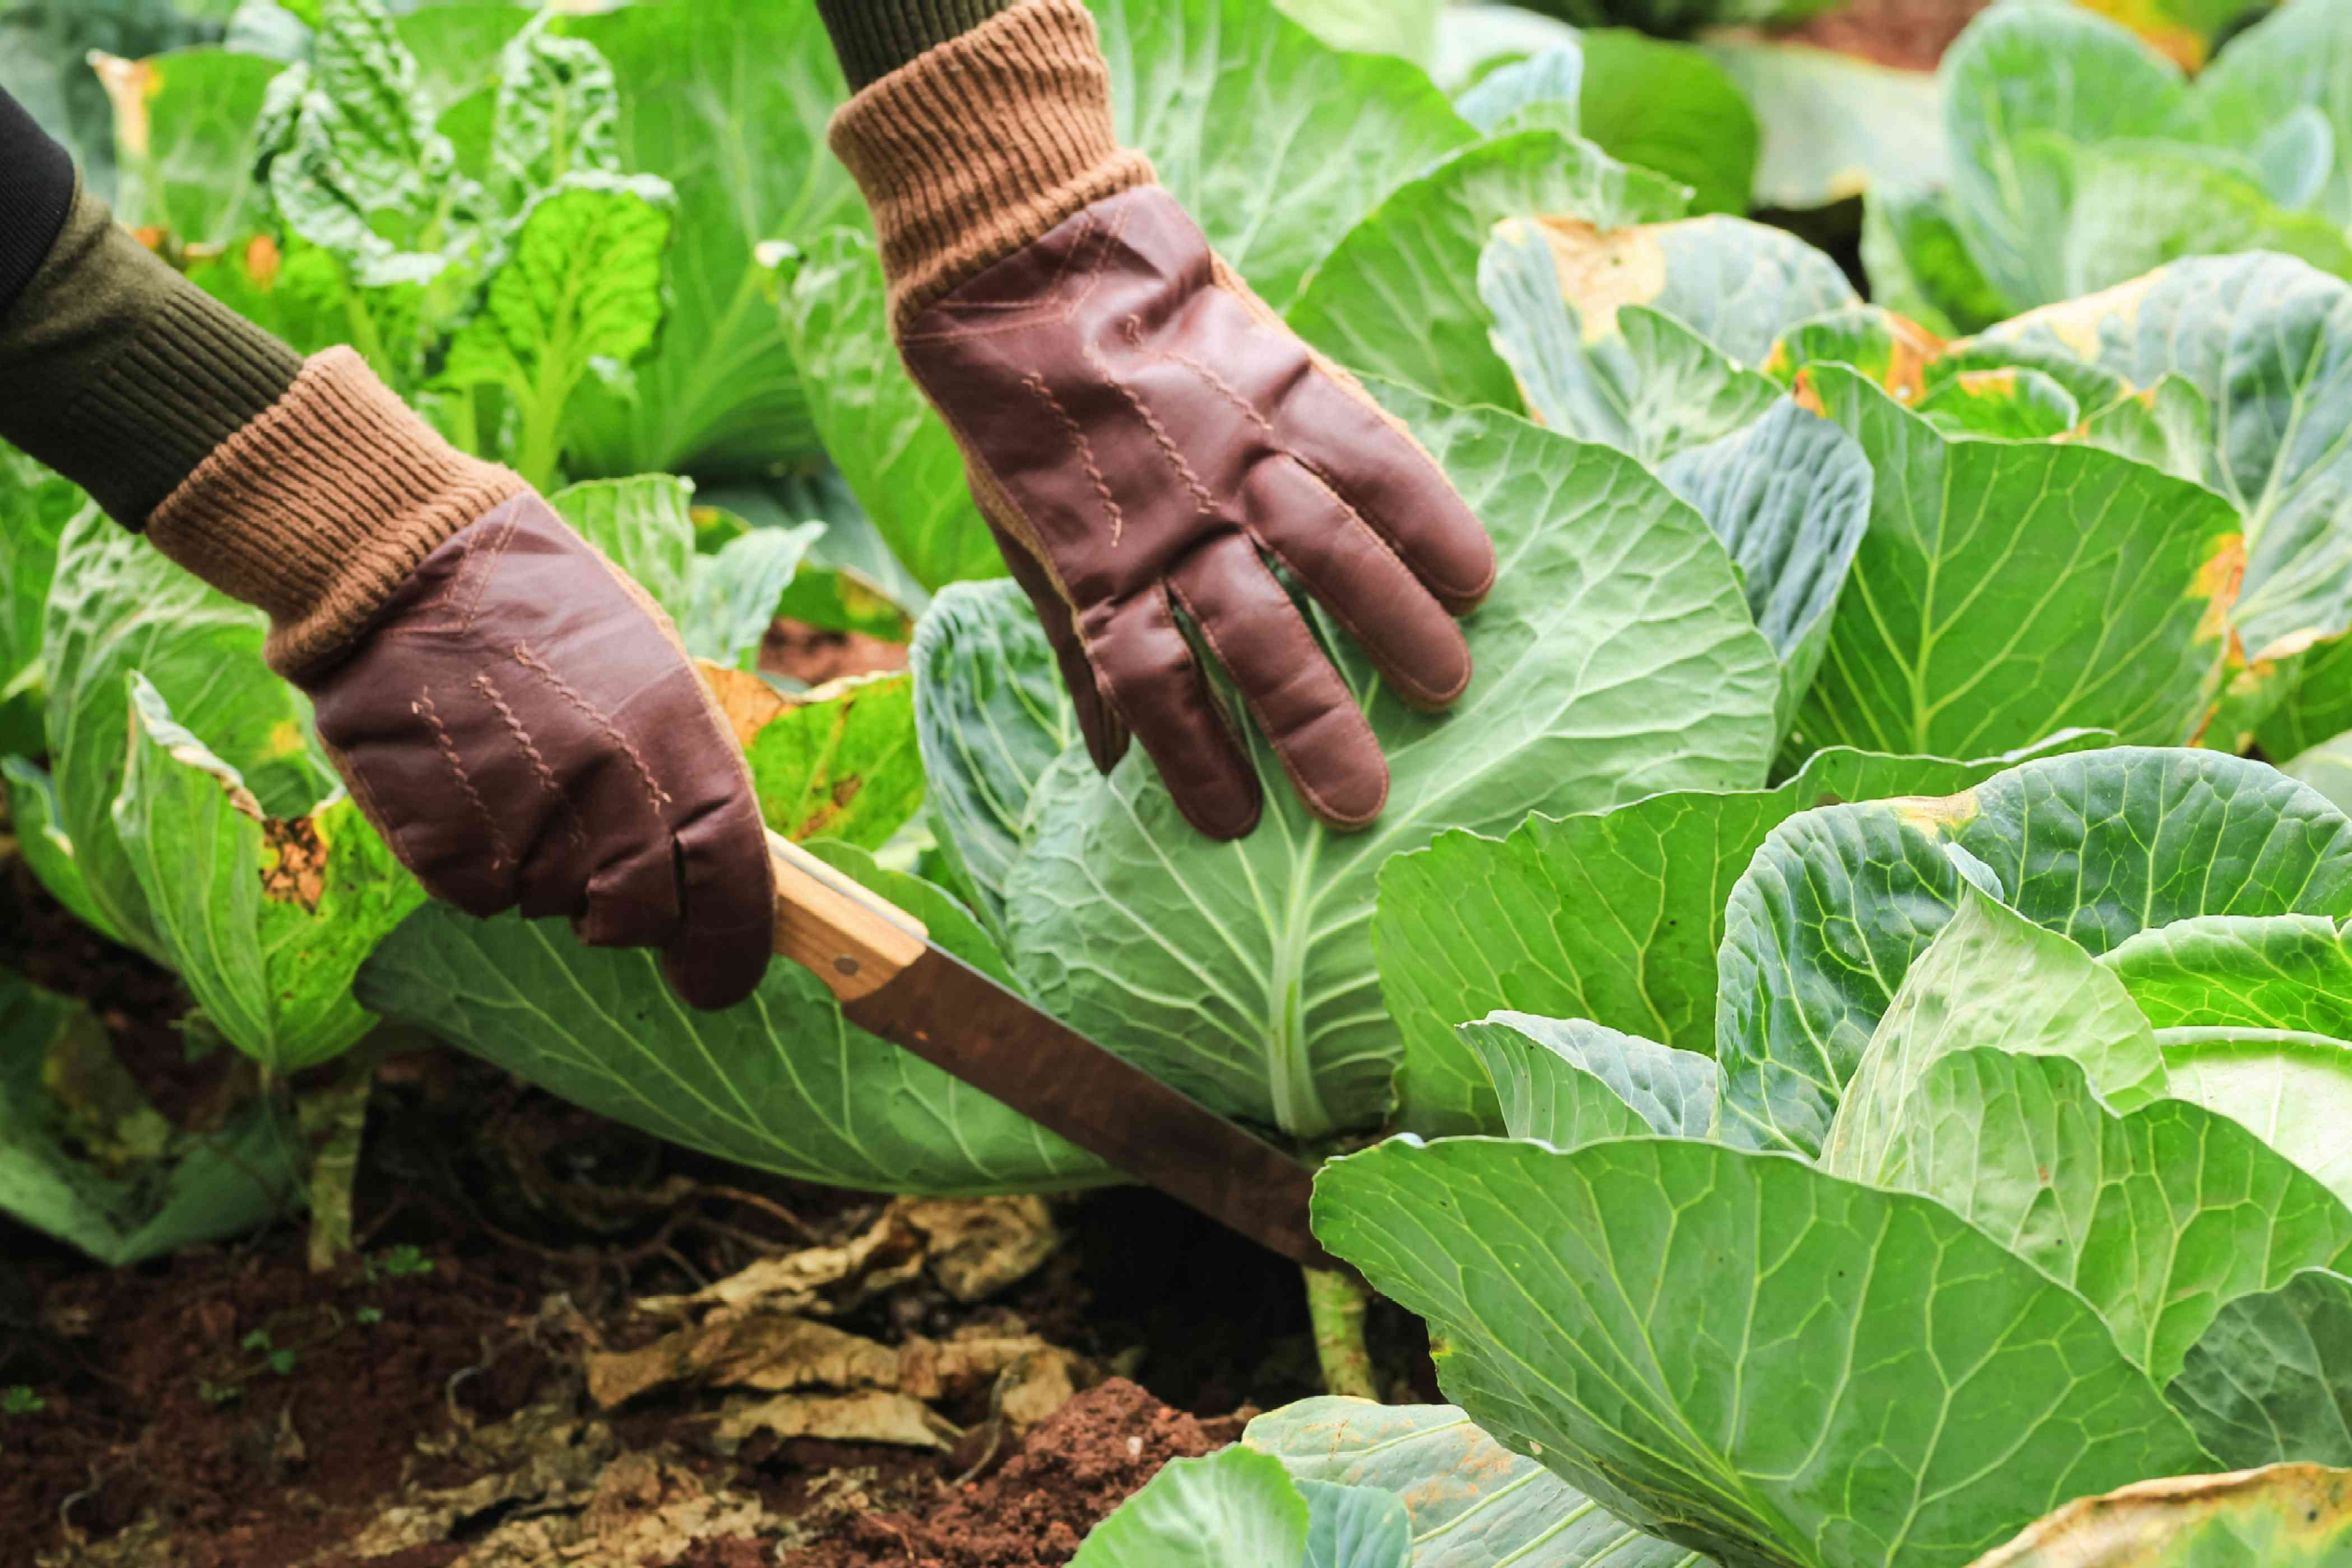 person wearing gardening gloves harvest large cabbage by cutting with large knife at base